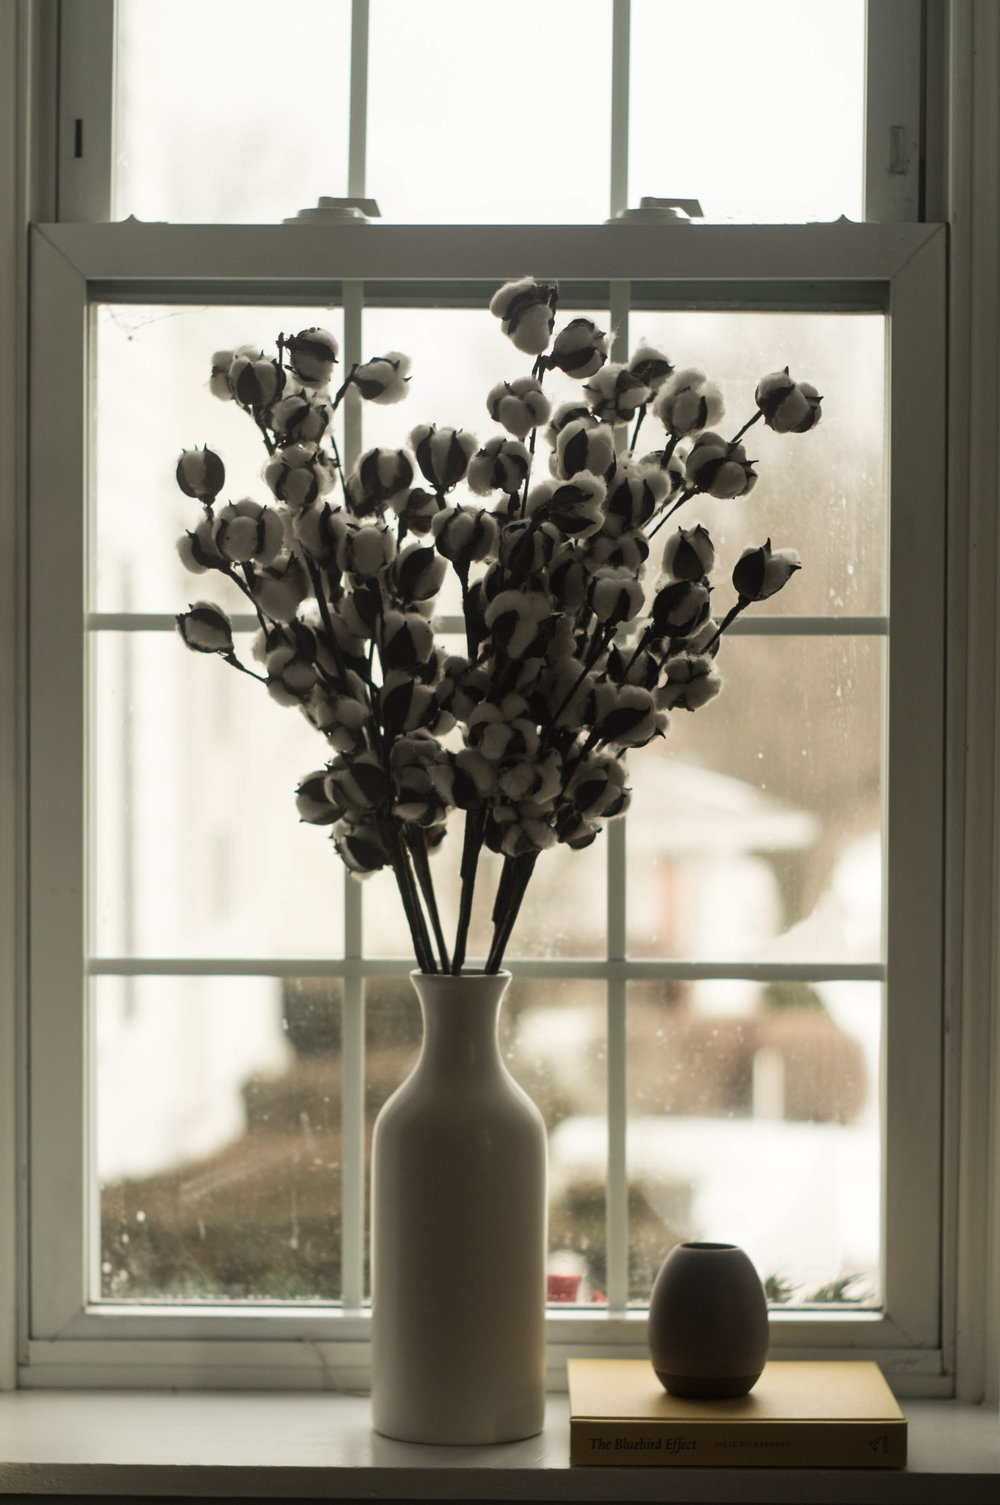 cotton pods flower vase windowsill image by samantha spigos